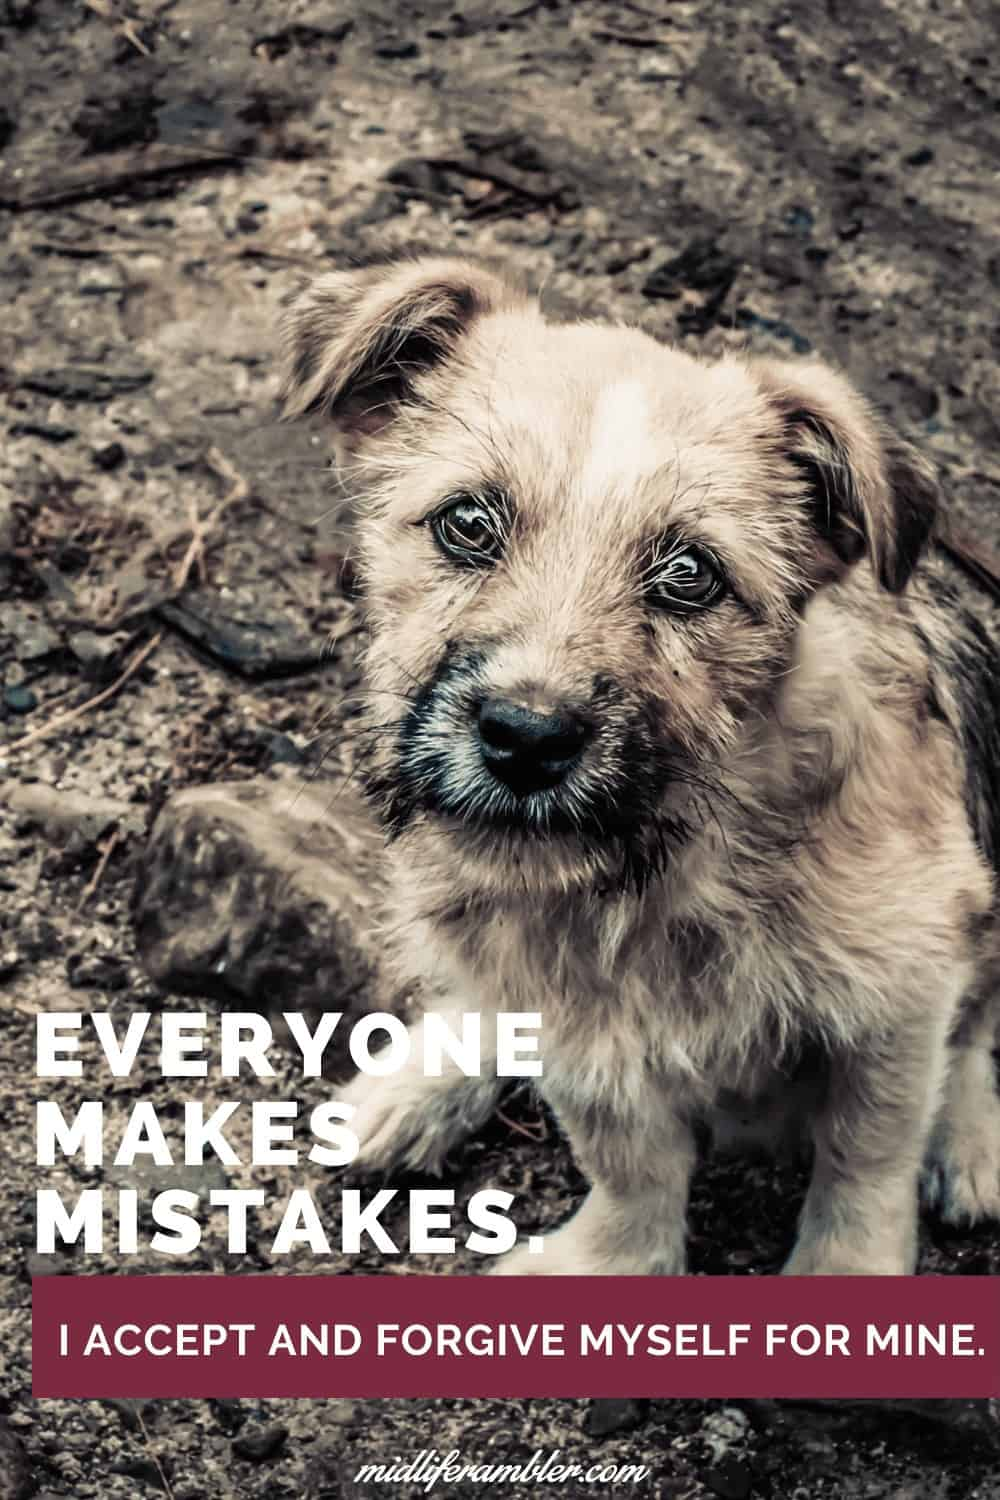 Affirmations for Self-Compassion - Everyone makes mistakes. I accept and forgive myself for mine.